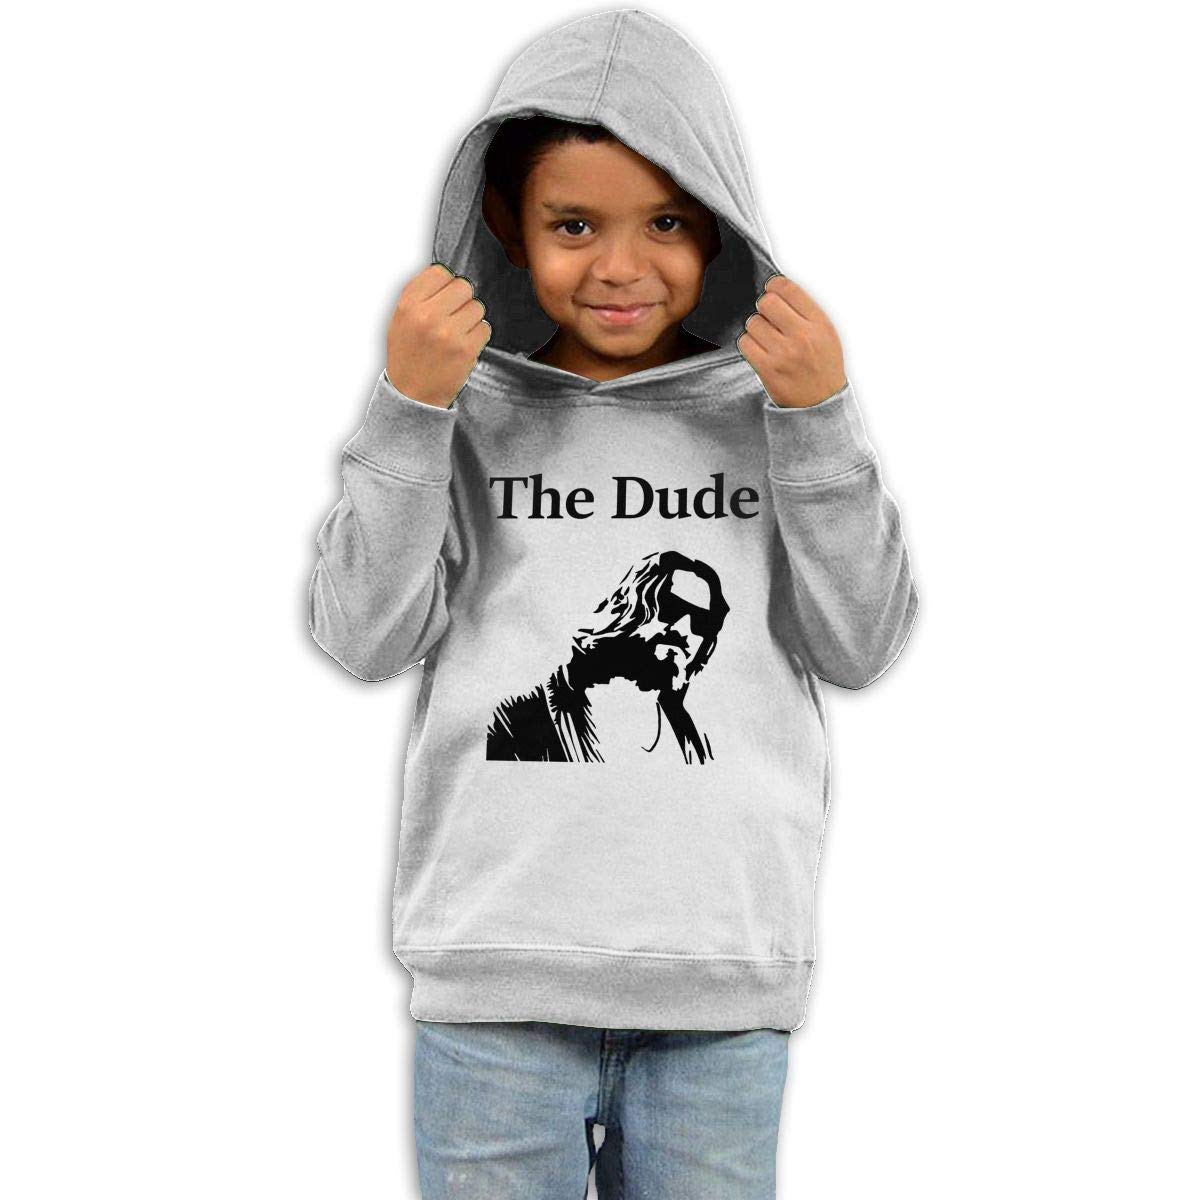 Stacy J. Payne Kids The Dude Particular Hoodies40 White